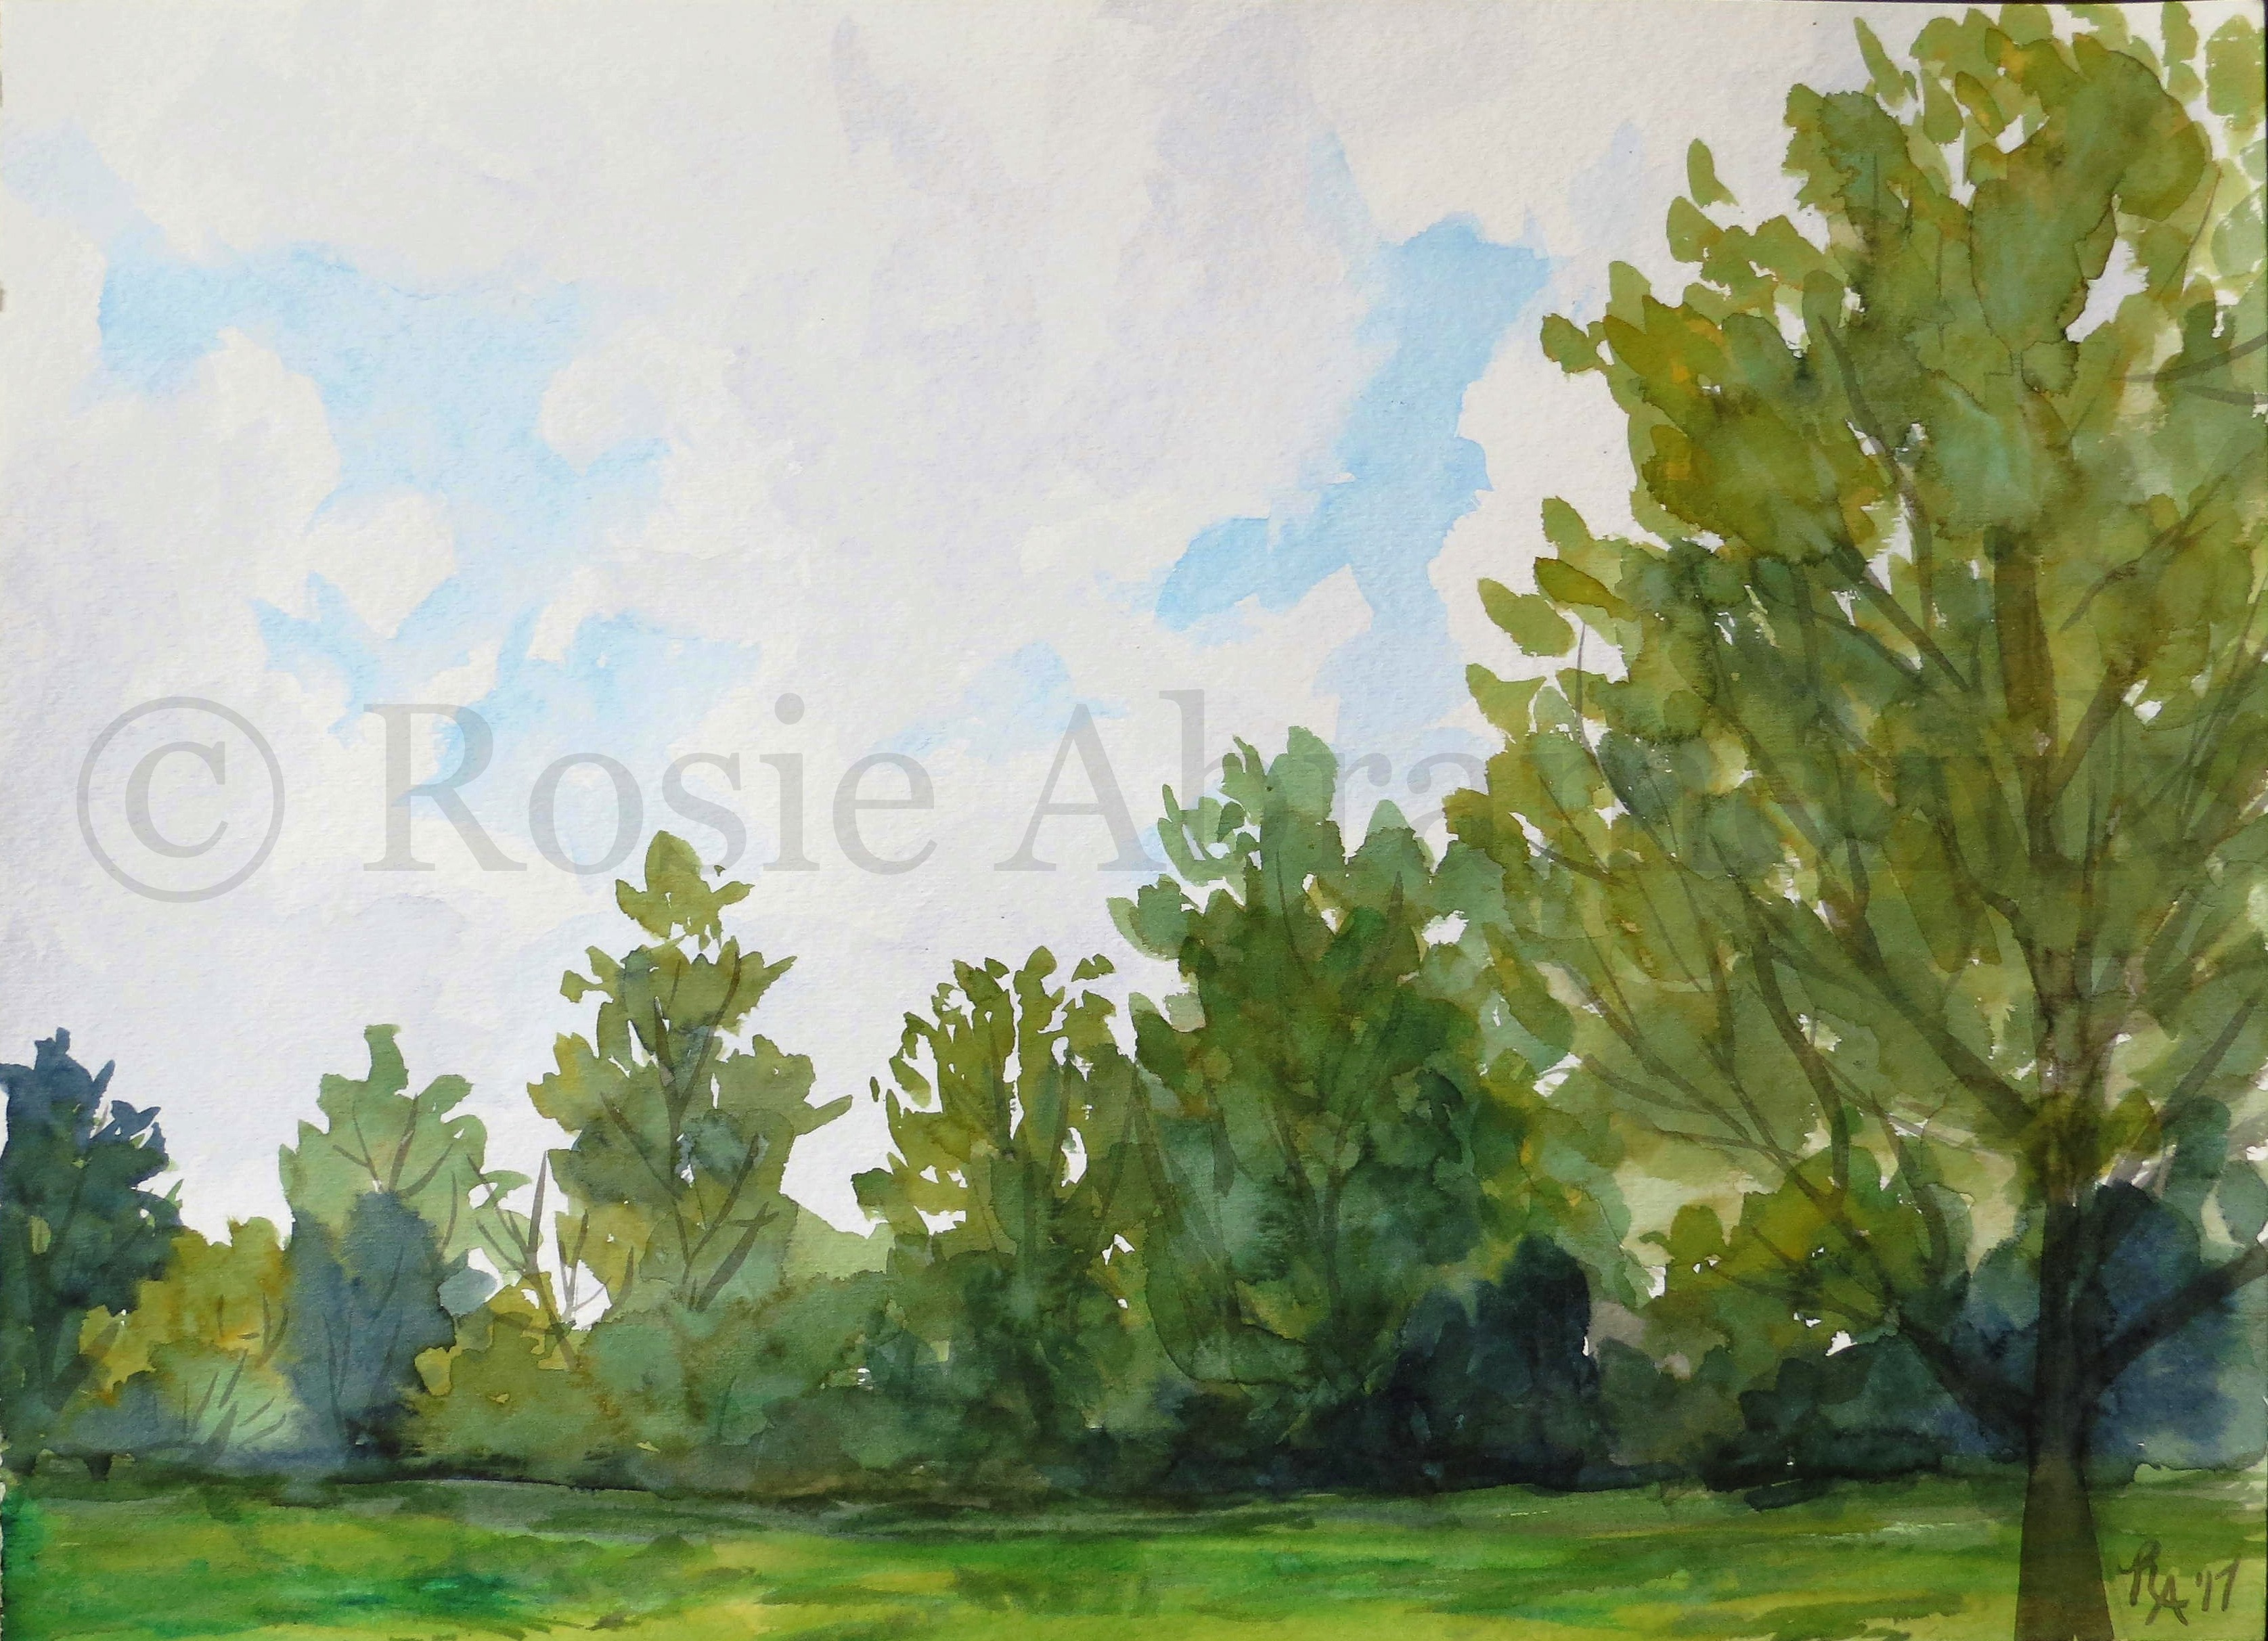 Greenery Along the Bank of the Mississippi River, St. Charles, MO, by Rosie Abramczyk, Watercolor, 2